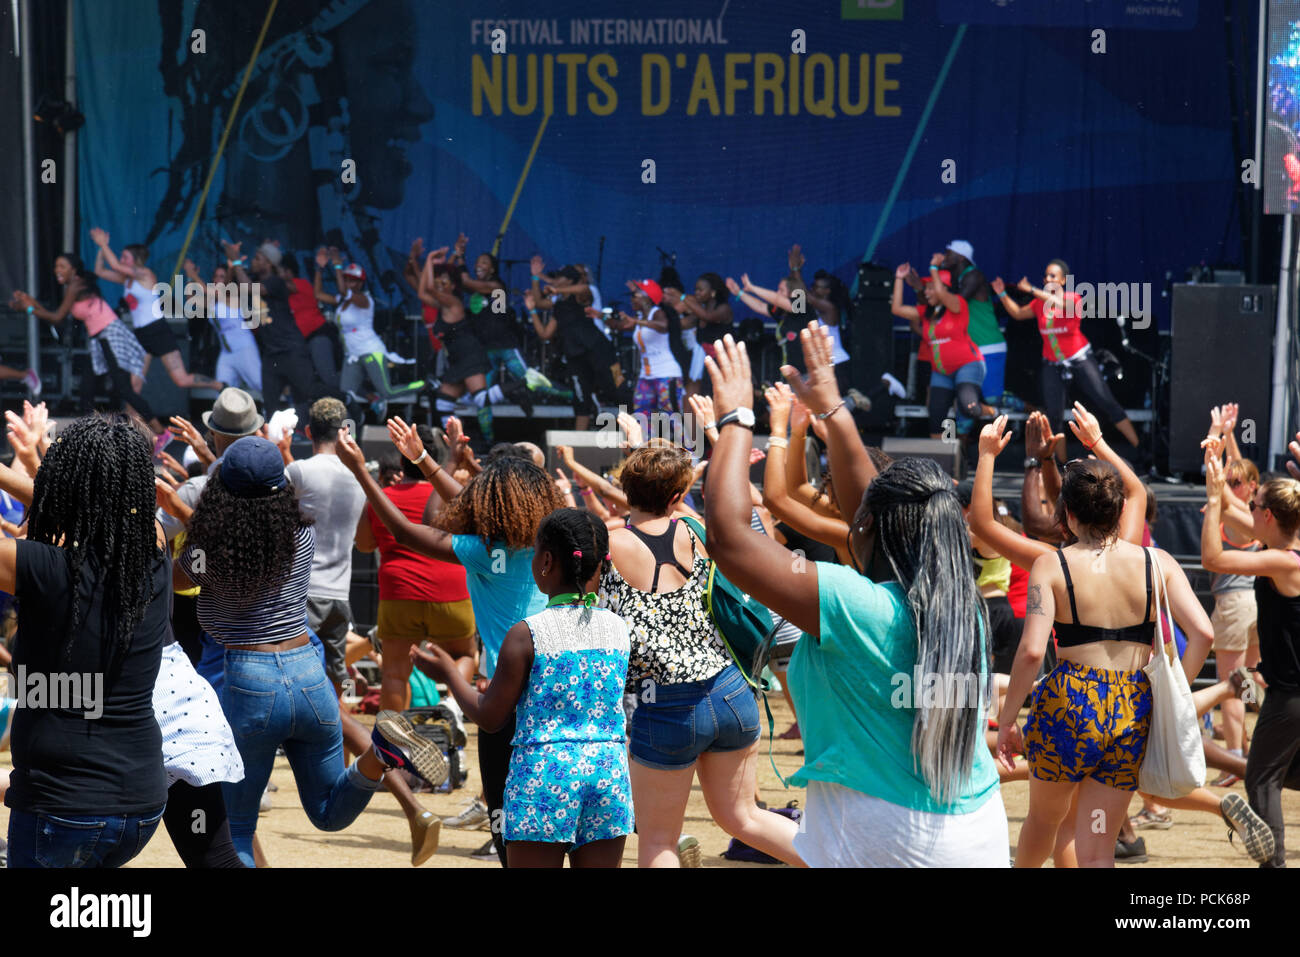 People dancing at the Festival Nuits D'Afrique in Montreal Stock Photo